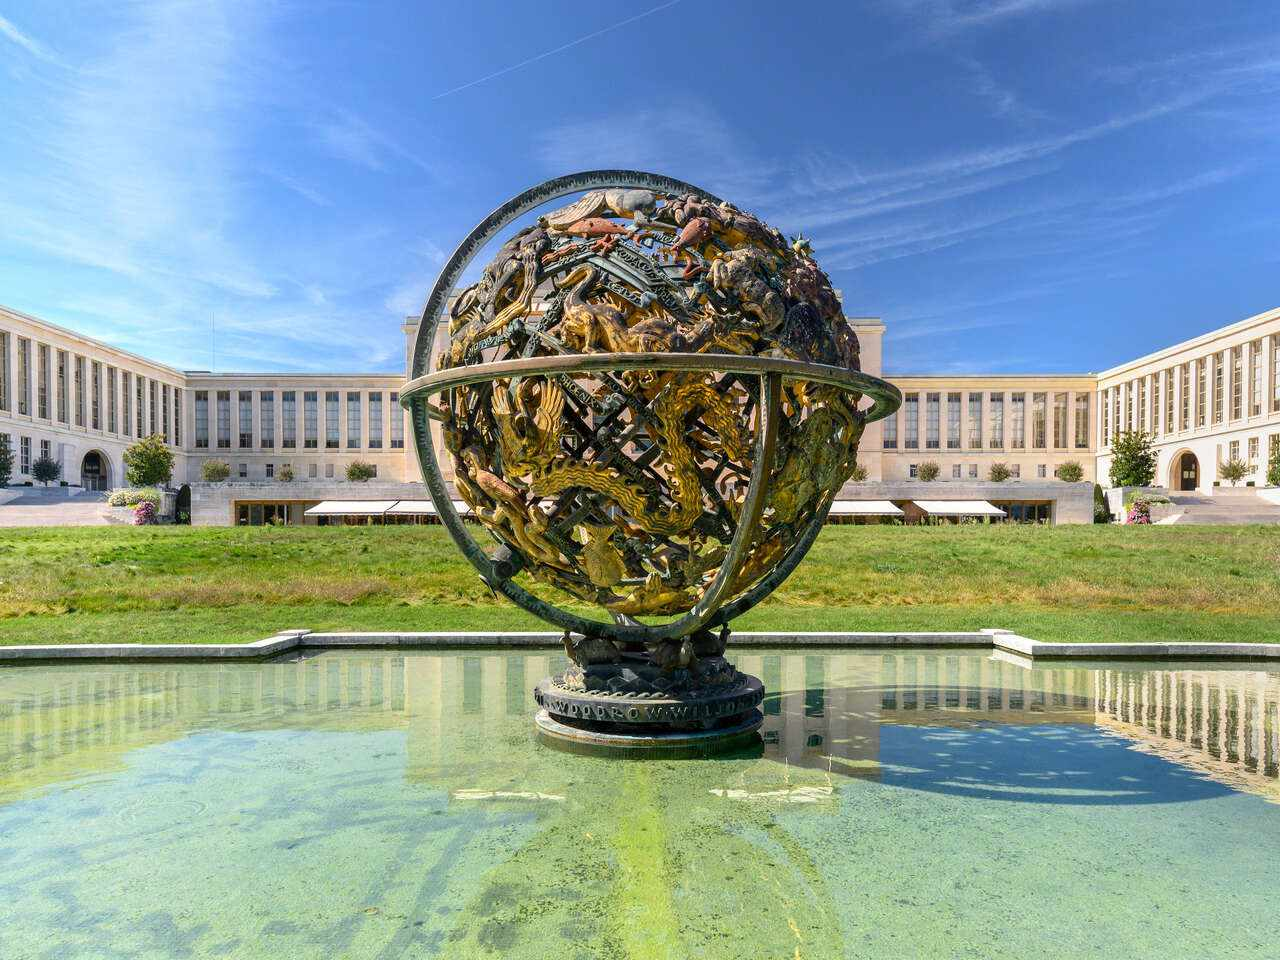 Globe sculpture in front of the Palais des Nations